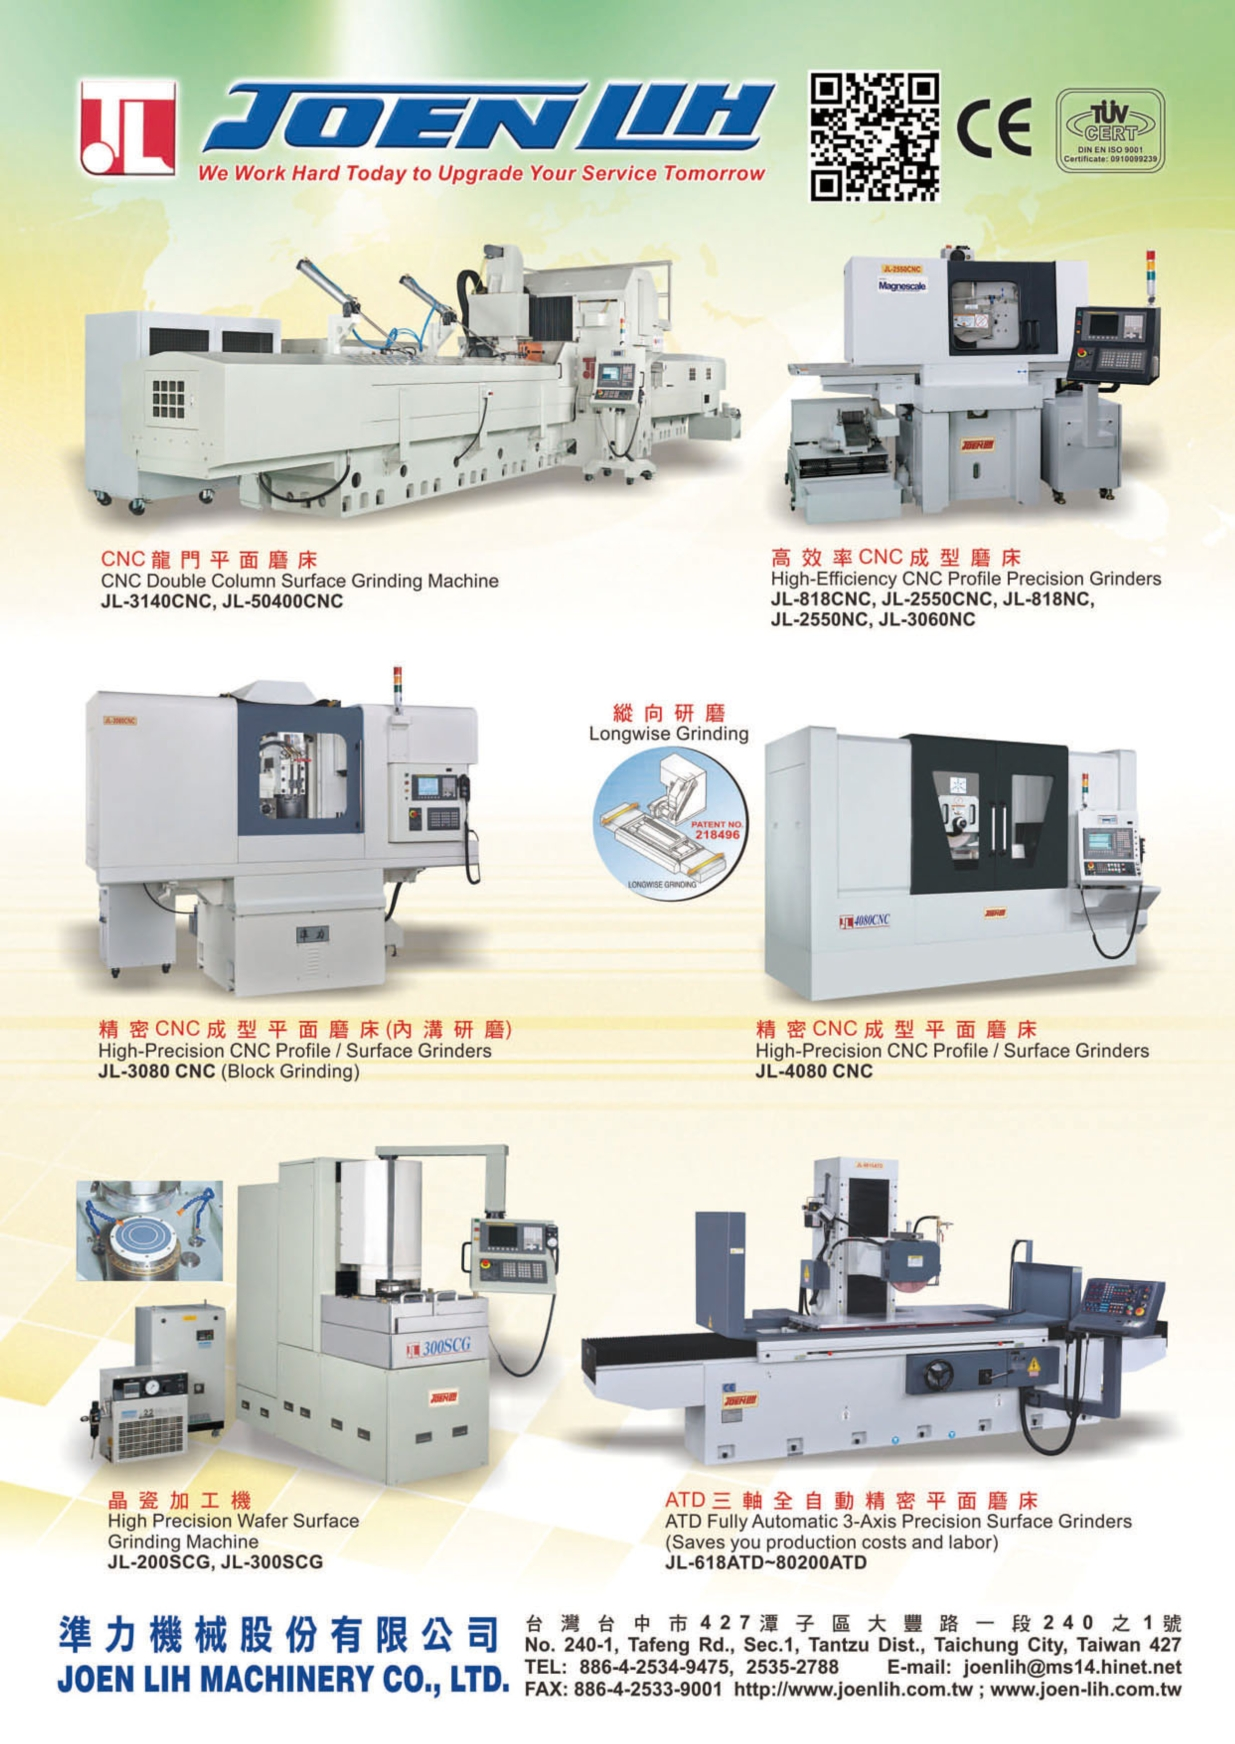 Who Makes Machinery in Taiwan JOEN LIH MACHINERY CO., LTD.